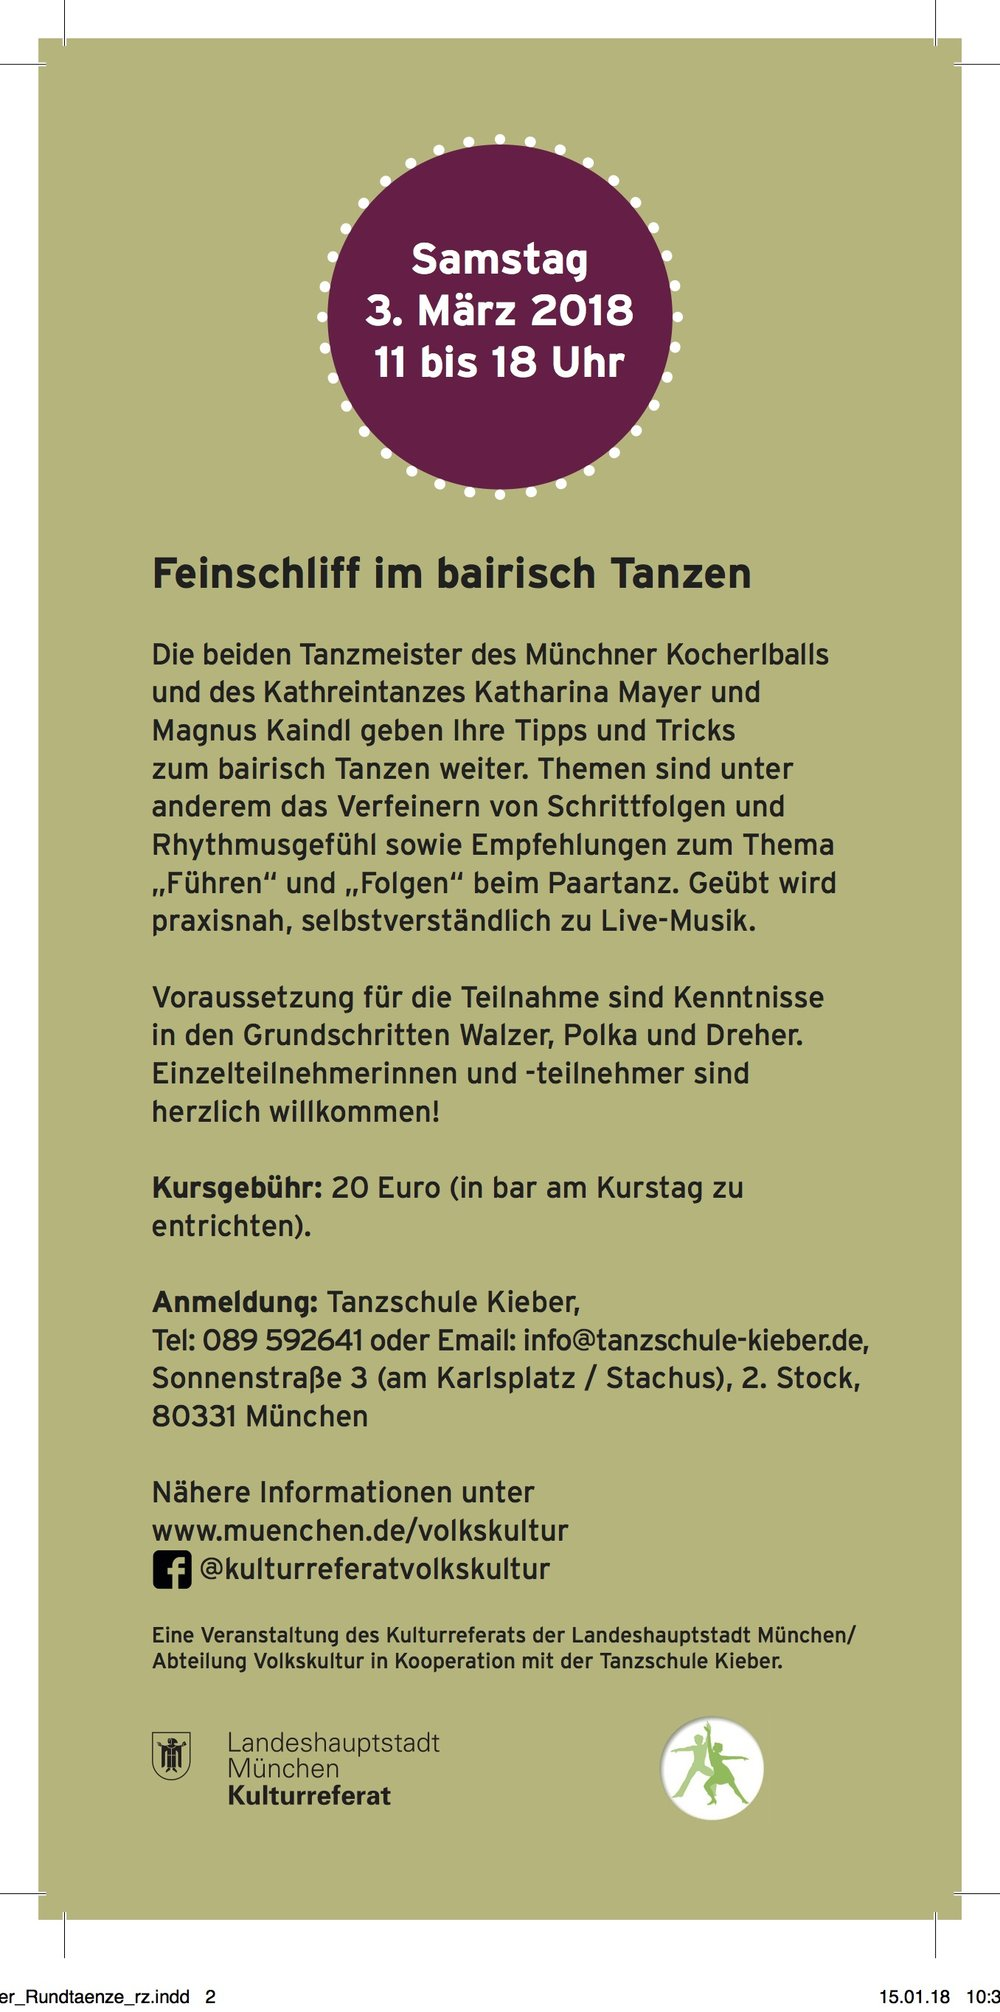 Flyer_Rundtaenze_rz_rs.jpg